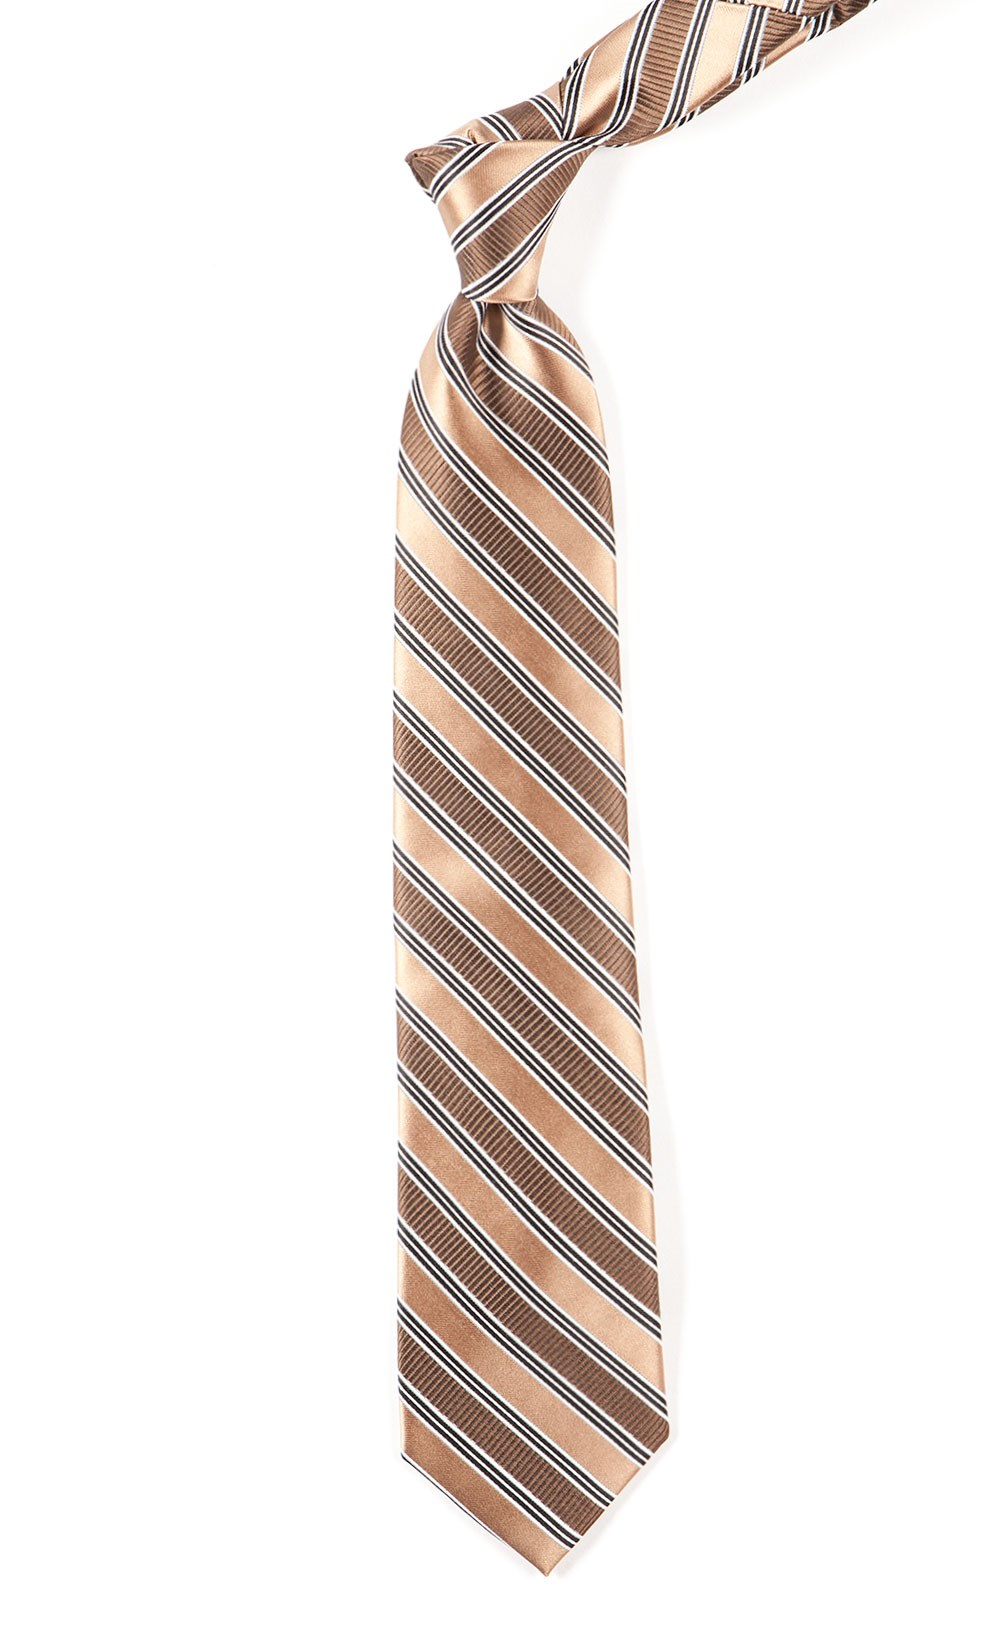 New 1920s Mens Ties & Bow Ties Stripe Type $19.00 AT vintagedancer.com